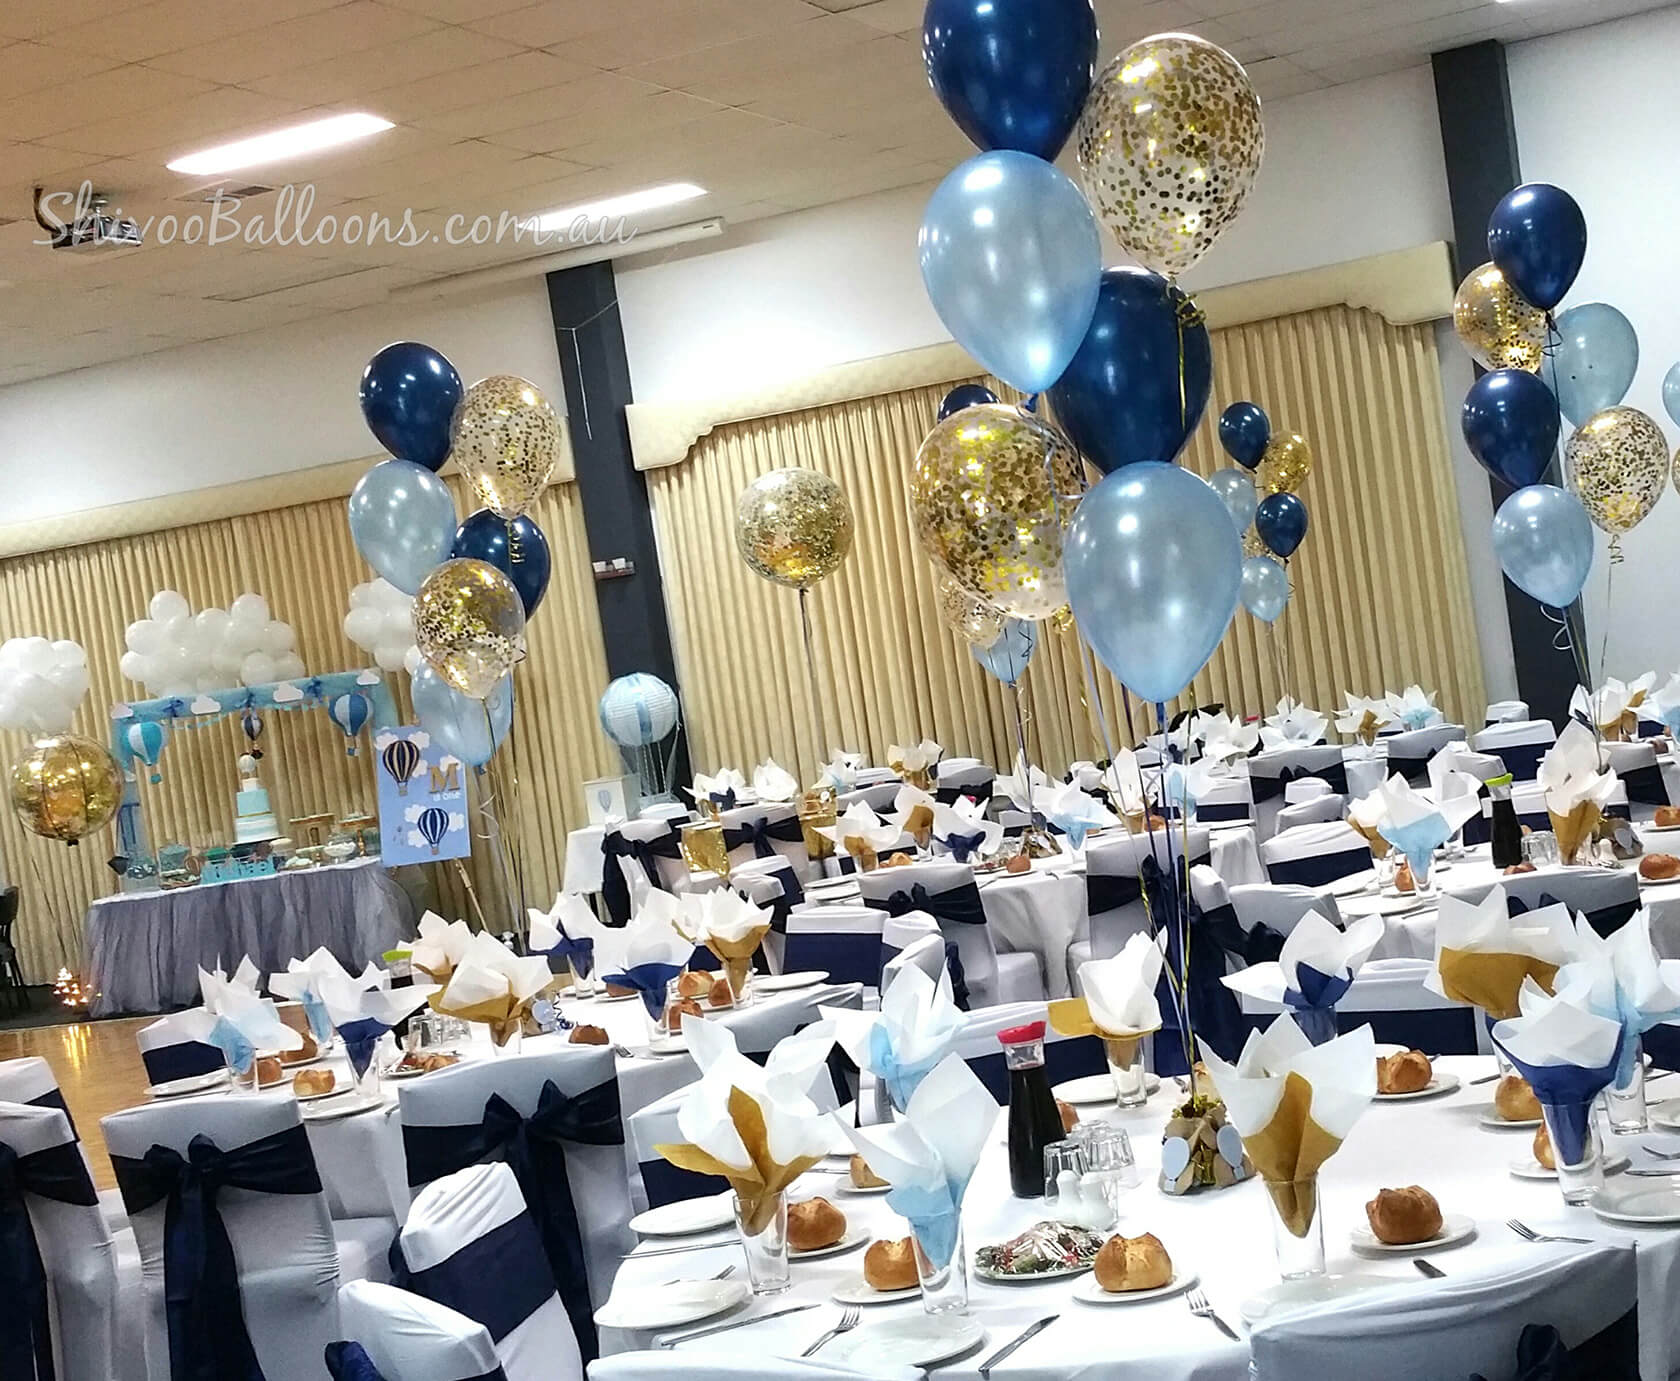 See Our Events! - image CE-64 on https://shivooballoons.com.au